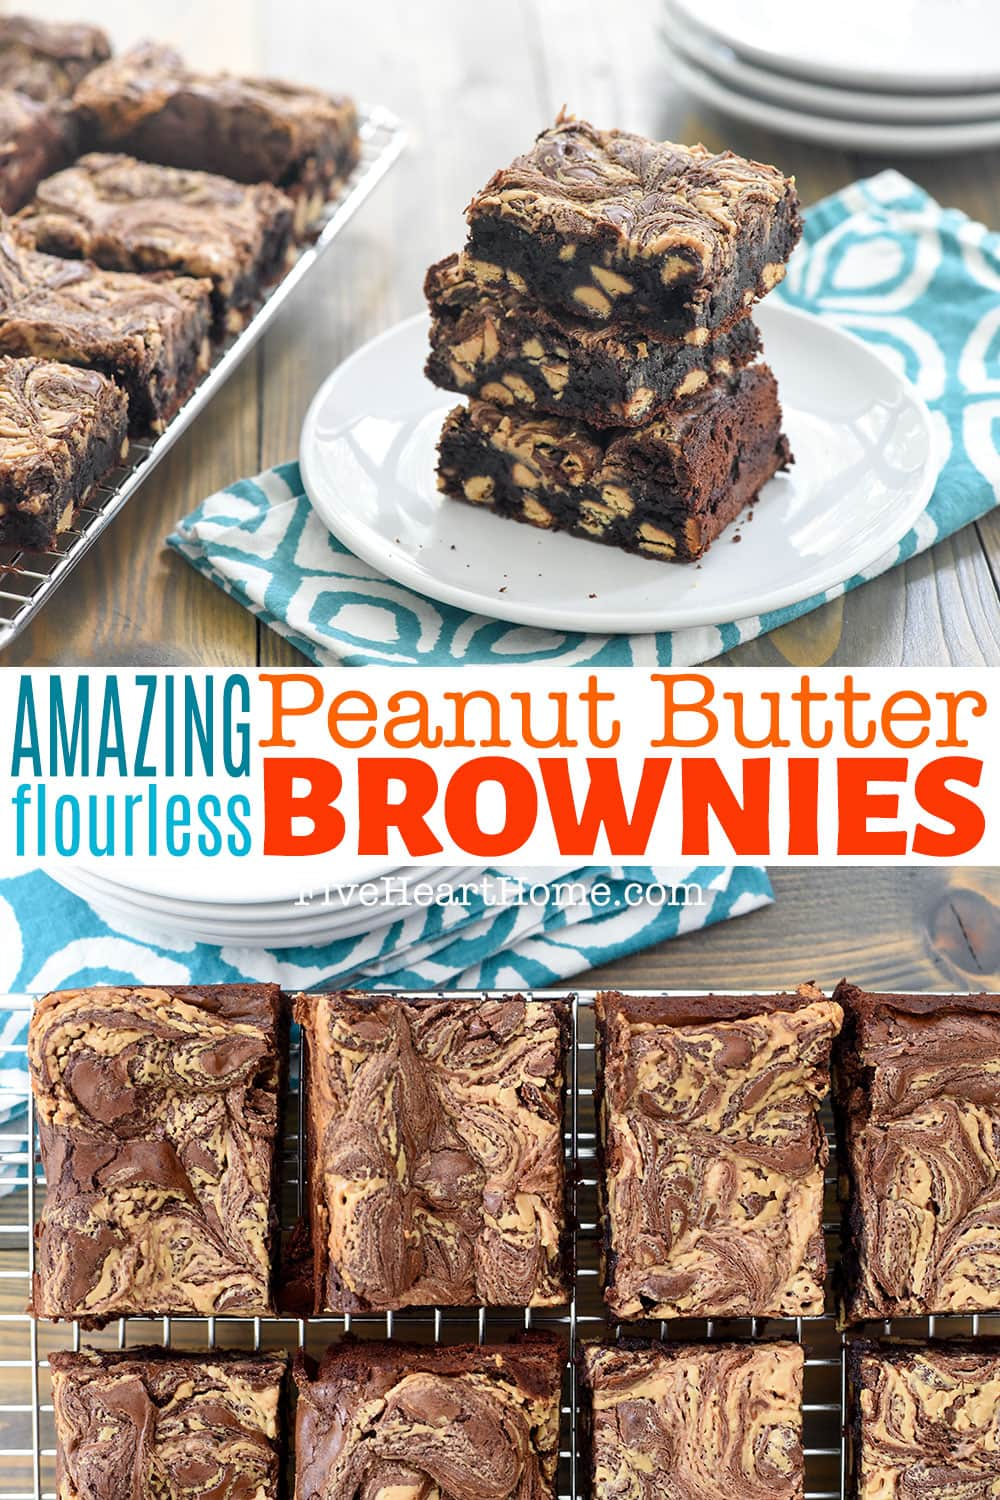 Peanut Butter Brownies ~ rich and decadent with an amazingly fudgy texture, this flourless brownie recipe is studded with peanut butter chips and swirled with peanut butter on top for a chocolate/PB lover's DREAM! And since this Peanut Butter Brownie recipe is flourless, it's also naturally gluten-free!   FiveHeartHome.com via @fivehearthome